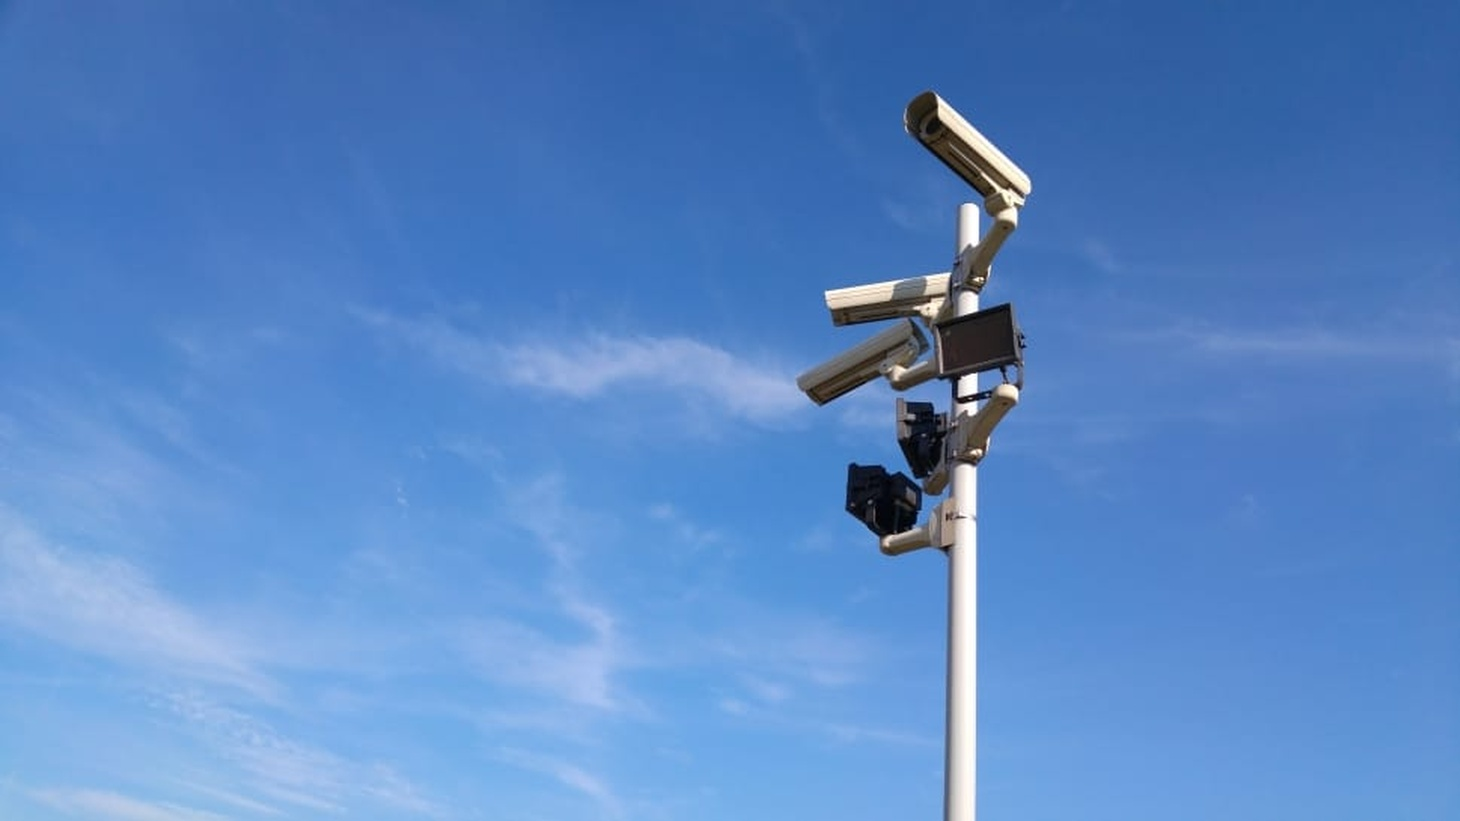 CCTV cameras on a light pole.